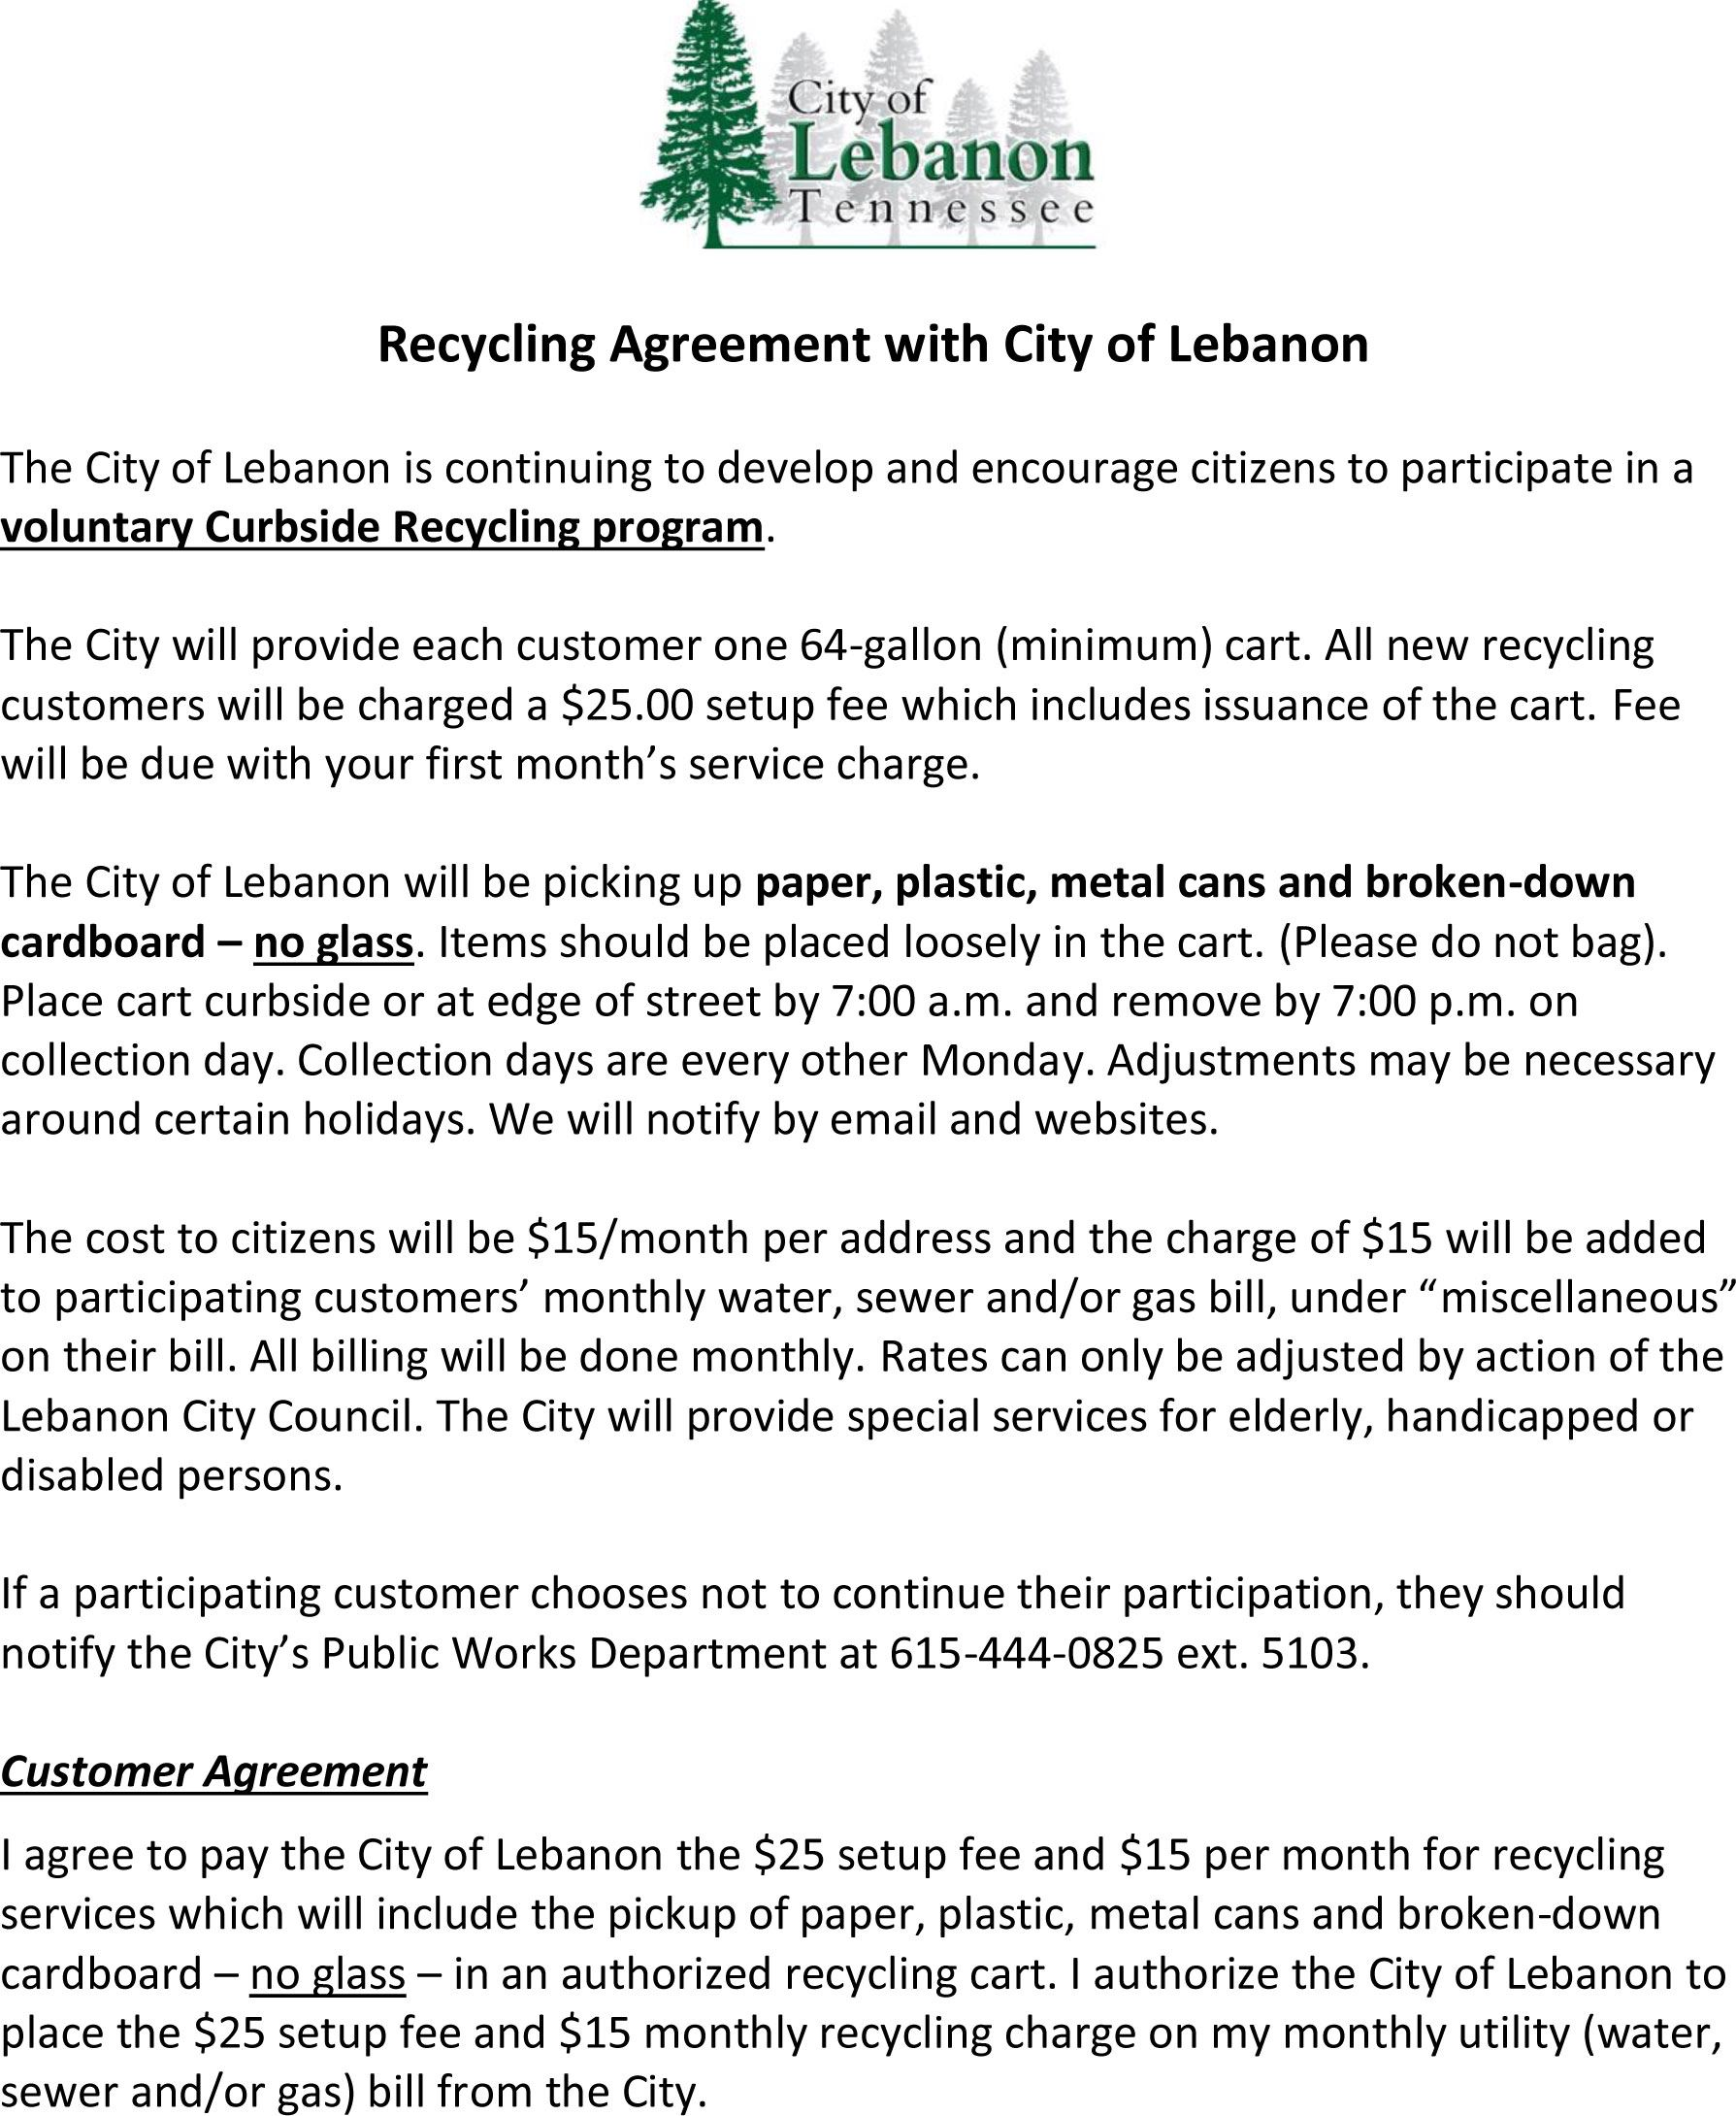 Recycling Agreement with City of Lebanon v2 5.3.19